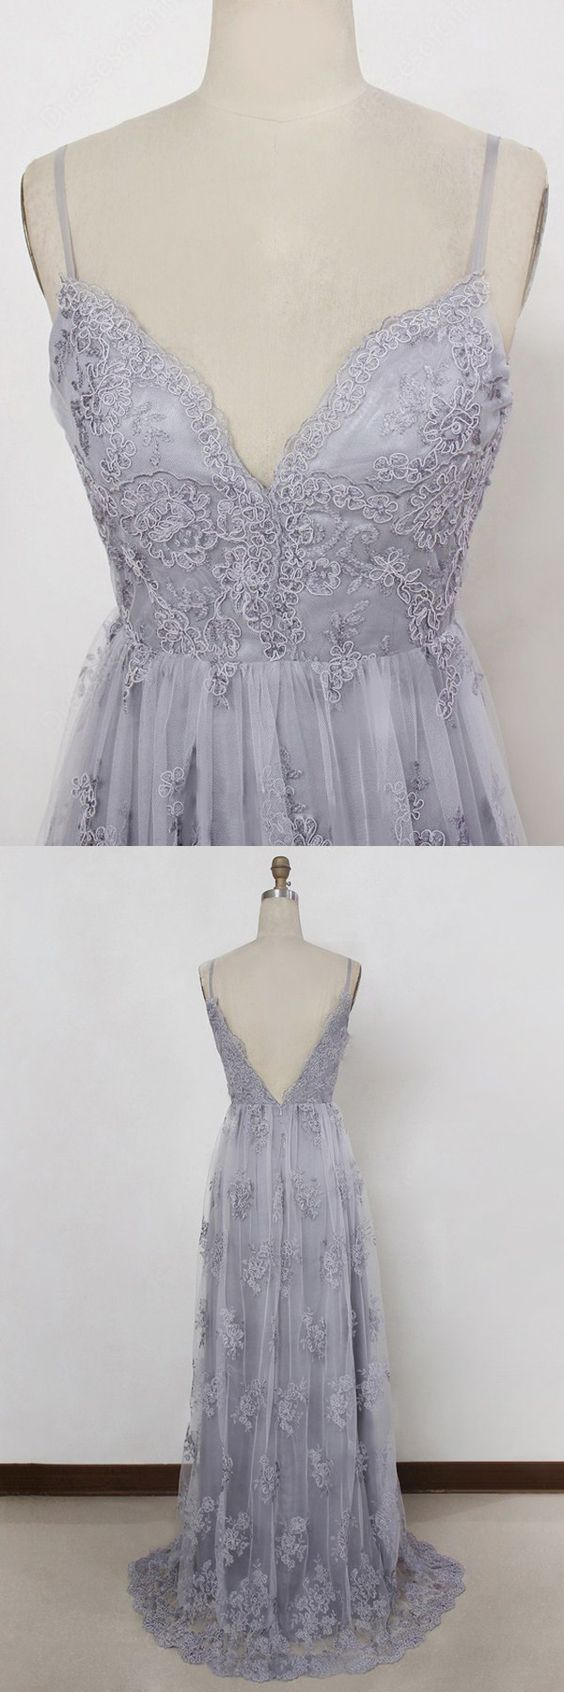 2018 grey spaghetti straps prom dress applique backless evening dress a-line tulle wedding dress,HS110